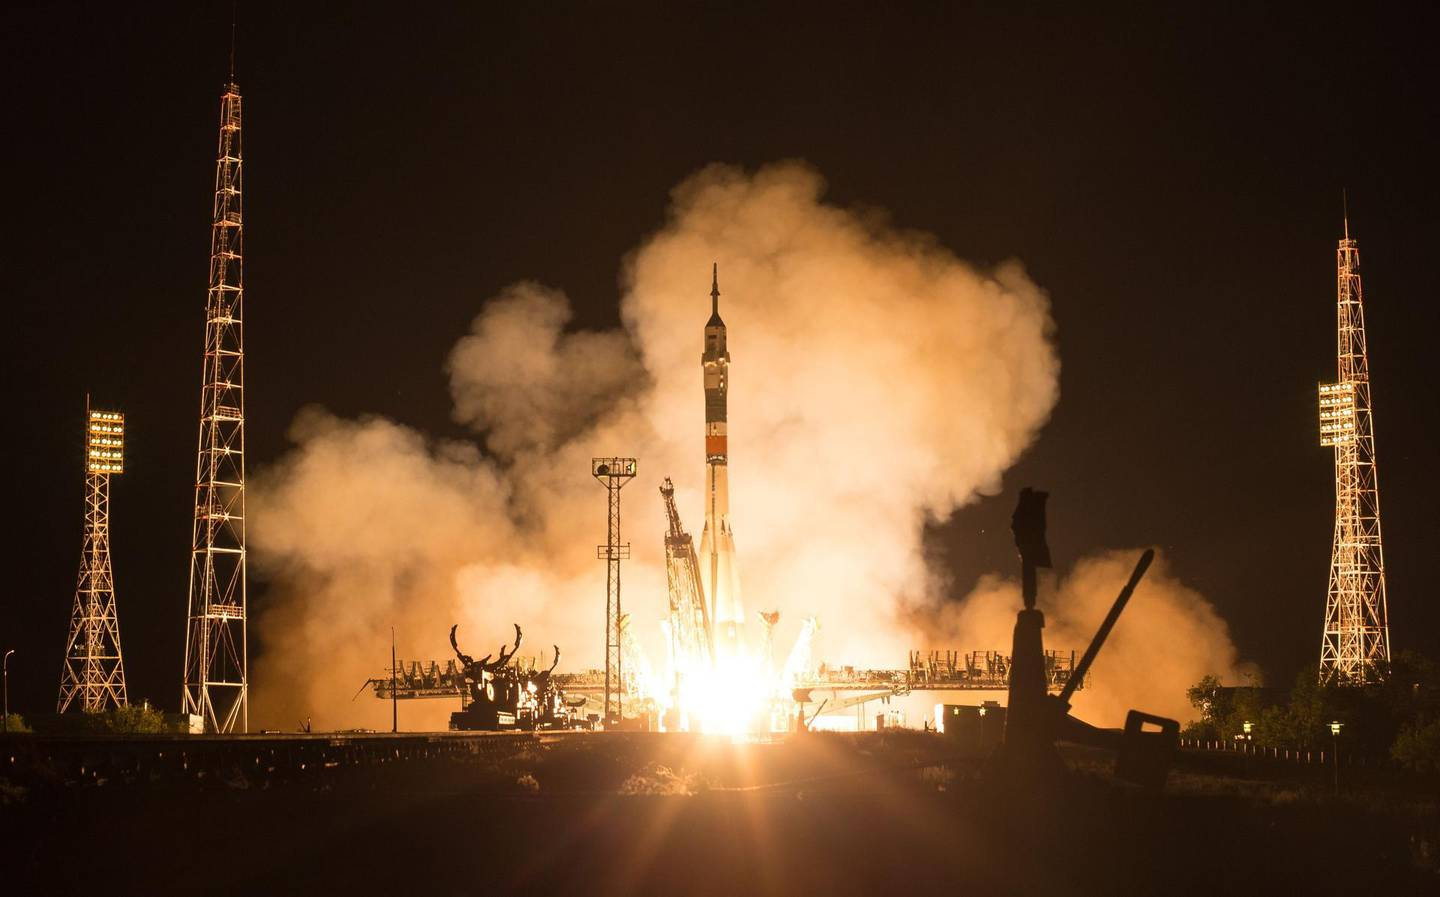 """TOPSHOT - This handout photo released by NASA shows The Soyuz MS-13 rocket launch with Expedition 60 Soyuz Commander Alexander Skvortsov of Roscosmos, flight engineer Drew Morgan of NASA, and flight engineer Luca Parmitano of ESA (European Space Agency), Saturday, July 20, 2019 at the Baikonur Cosmodrome in Kazakhstan. Skvortsov, Morgan, and Parmitano launched at 12:28 p.m. Eastern time (9:28 p.m. Baikonur time) to begin their mission to the International Space Station.   - RESTRICTED TO EDITORIAL USE - MANDATORY CREDIT """"AFP PHOTO / NASA /Joel Kowsky """" - NO MARKETING NO ADVERTISING CAMPAIGNS - DISTRIBUTED AS A SERVICE TO CLIENTS  / AFP / NASA / NASA / Joel KOWSKY / RESTRICTED TO EDITORIAL USE - MANDATORY CREDIT """"AFP PHOTO / NASA /Joel Kowsky """" - NO MARKETING NO ADVERTISING CAMPAIGNS - DISTRIBUTED AS A SERVICE TO CLIENTS"""